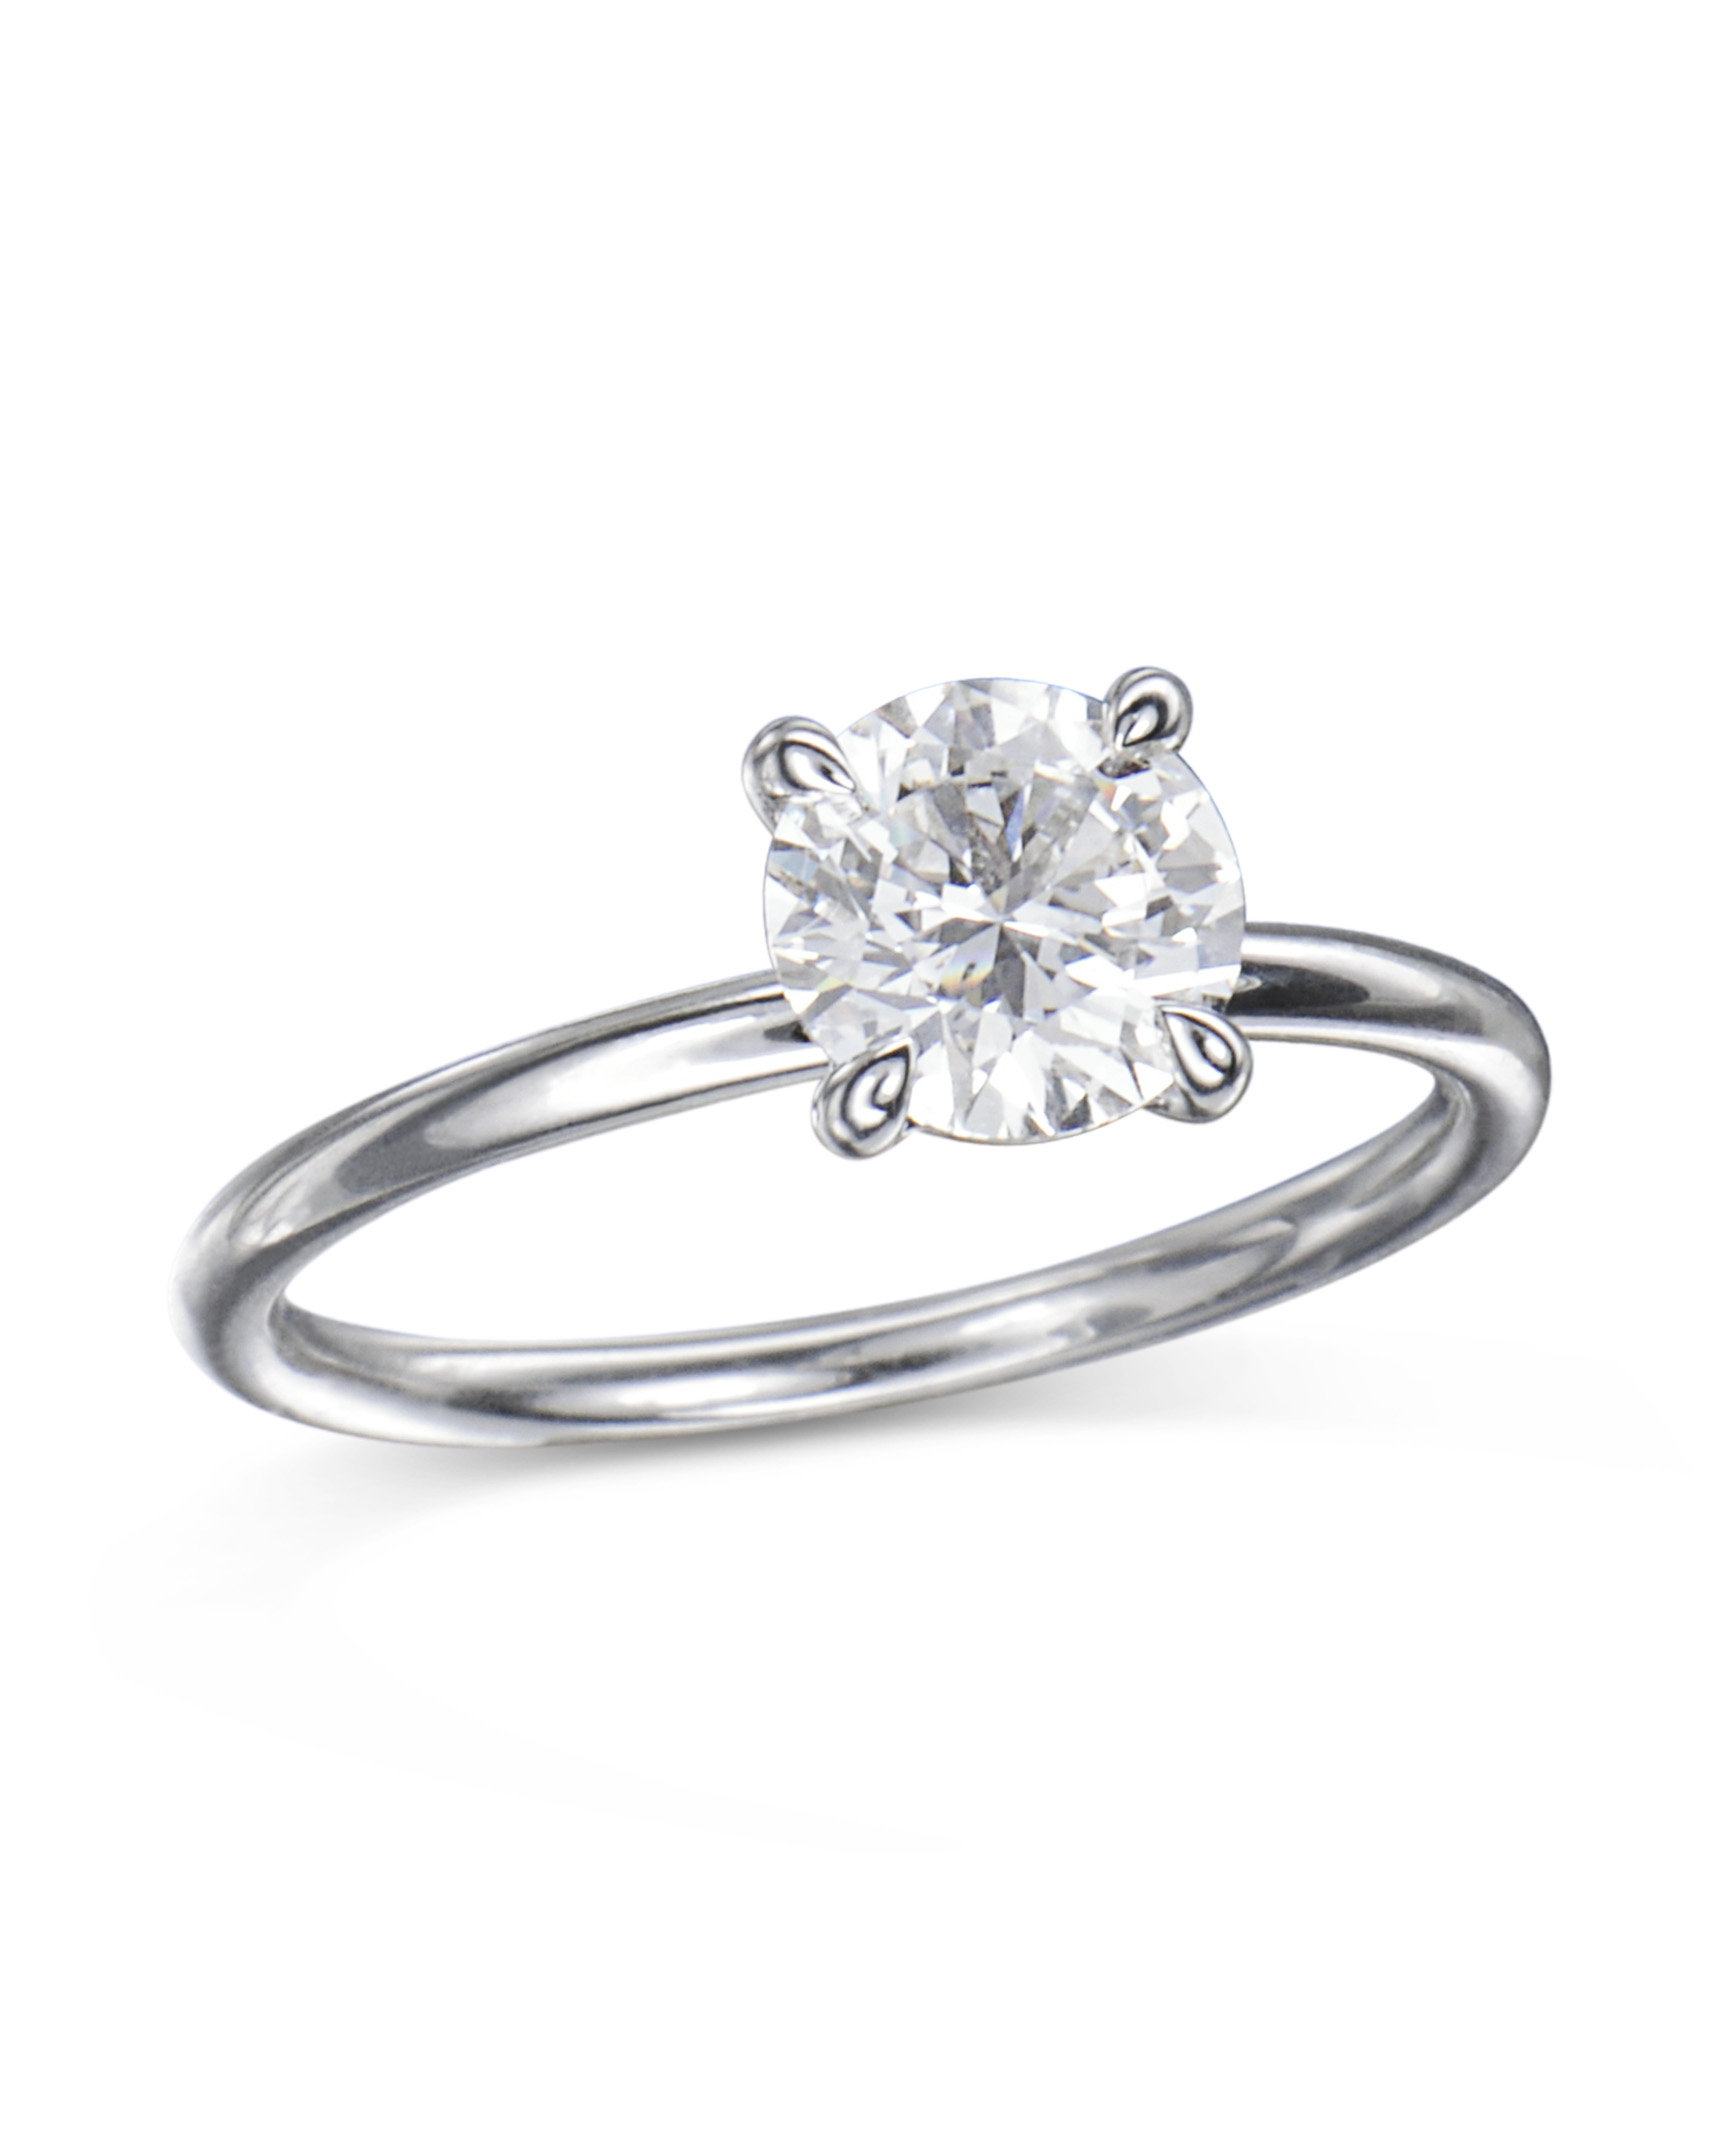 Engagement Rings In Which Hand: Platinum Hand-Made Diamond Engagement Ring